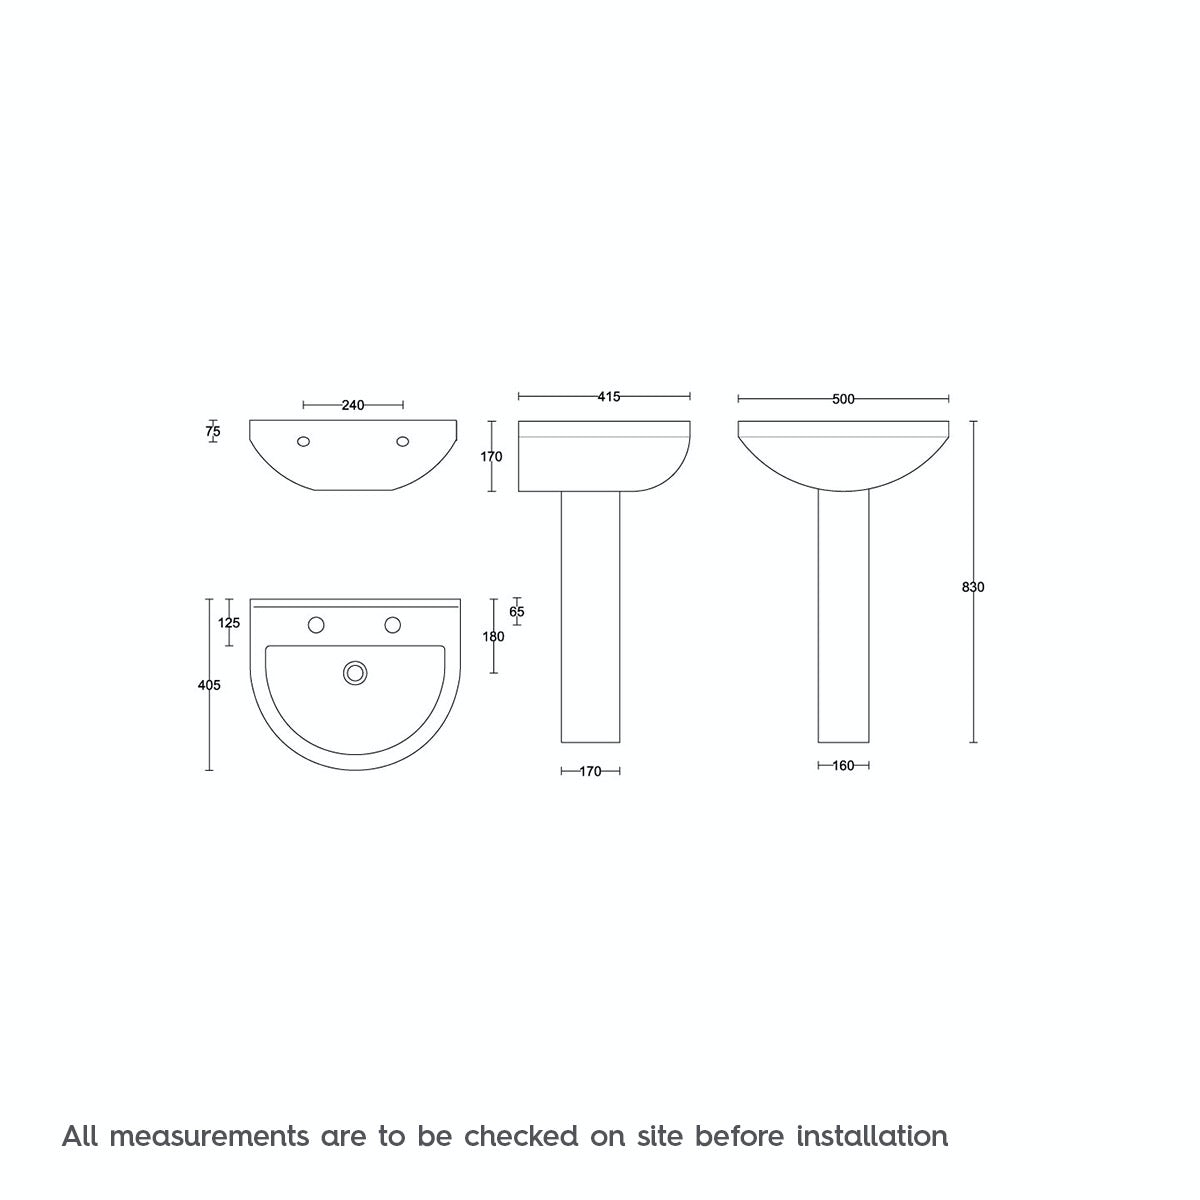 Dimensions for 500mm width